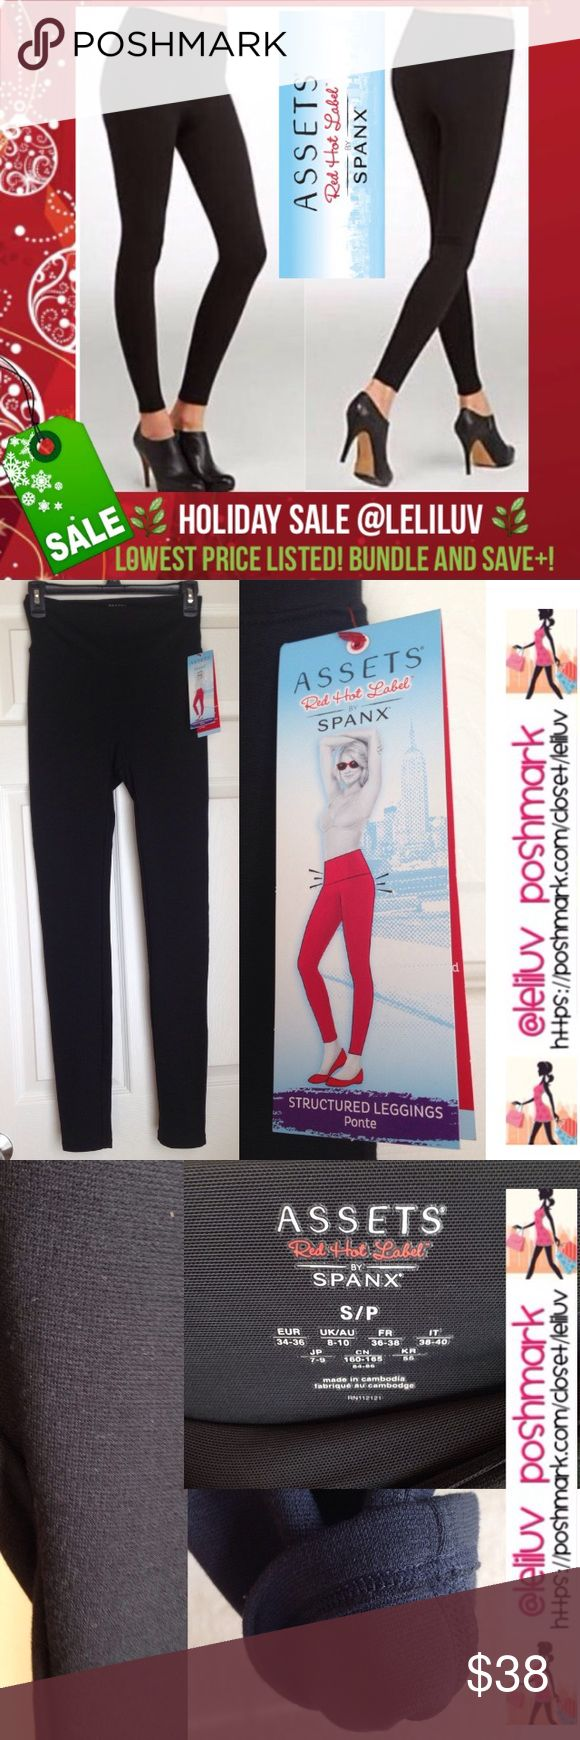 """Assets by SPANX ponte structured leggings black NWT. Assets by SPANX structured leggings ponte (thicker knit, opaque. Flattering fabric, hides your lumps and bumps in ponte shaping leggings. Perfect for travel & office, wear day to night. Flatten the tummy with a wide double-layer shaping mesh waistband. Slims and smoothes from tummy to legs ✔️Approx. measurements, unstretched: 13"""" waist, 28'' inseam (from seam at crotch), 14.5""""hips. ❗️See pic.4 with suggested sizes. ✔️Fabric content: 72%…"""